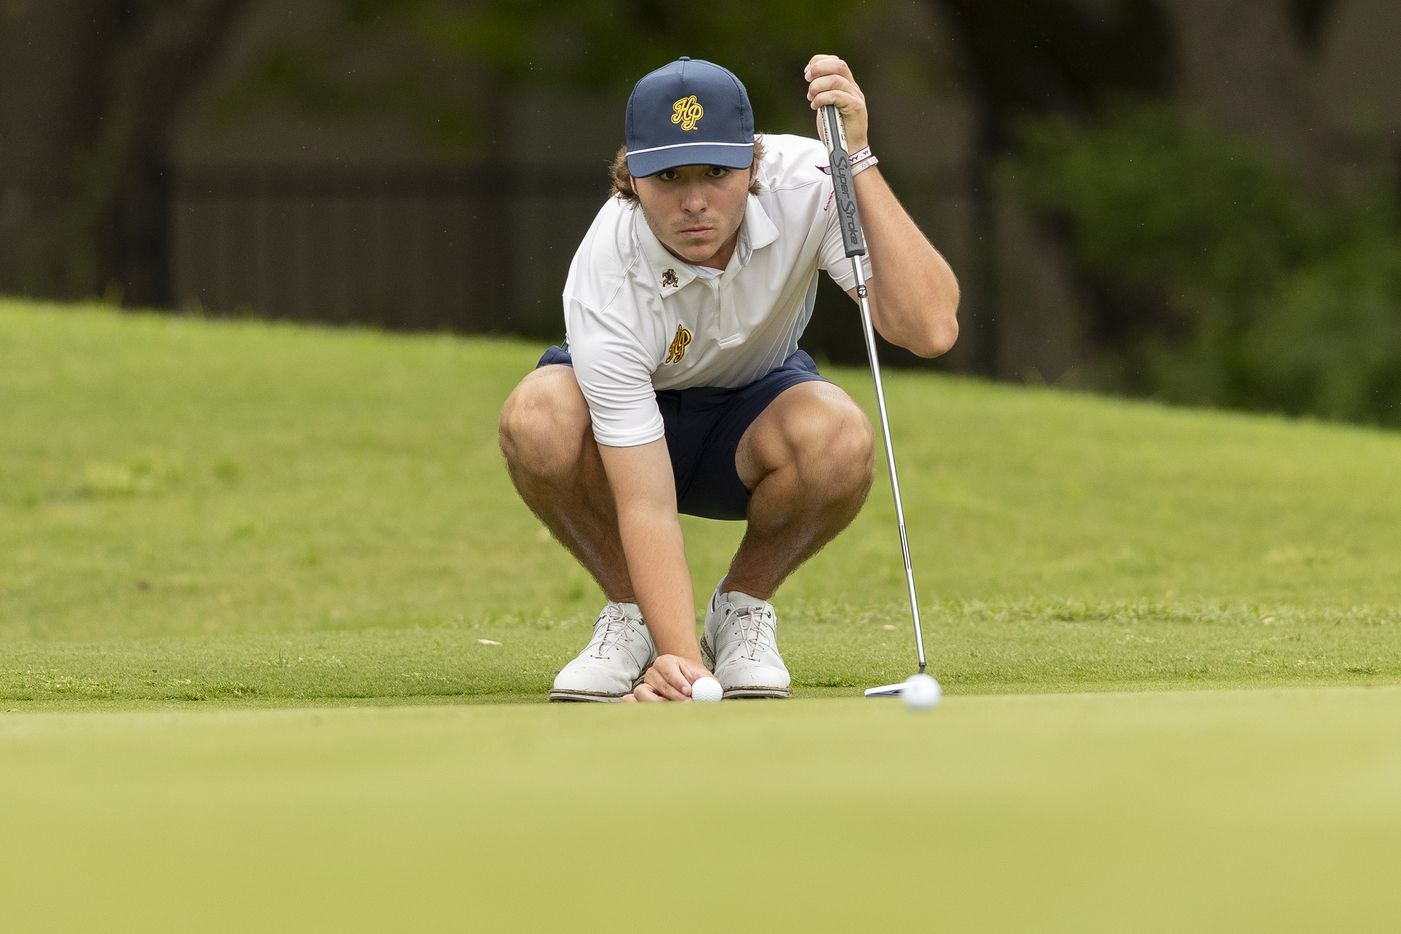 Highland ParkÕs Christian Clark studies his shot on the 10th green during round 1 of the UIL Class 5A boys golf tournament in Georgetown, Monday, May 17, 2021. (Stephen Spillman/Special Contributor)